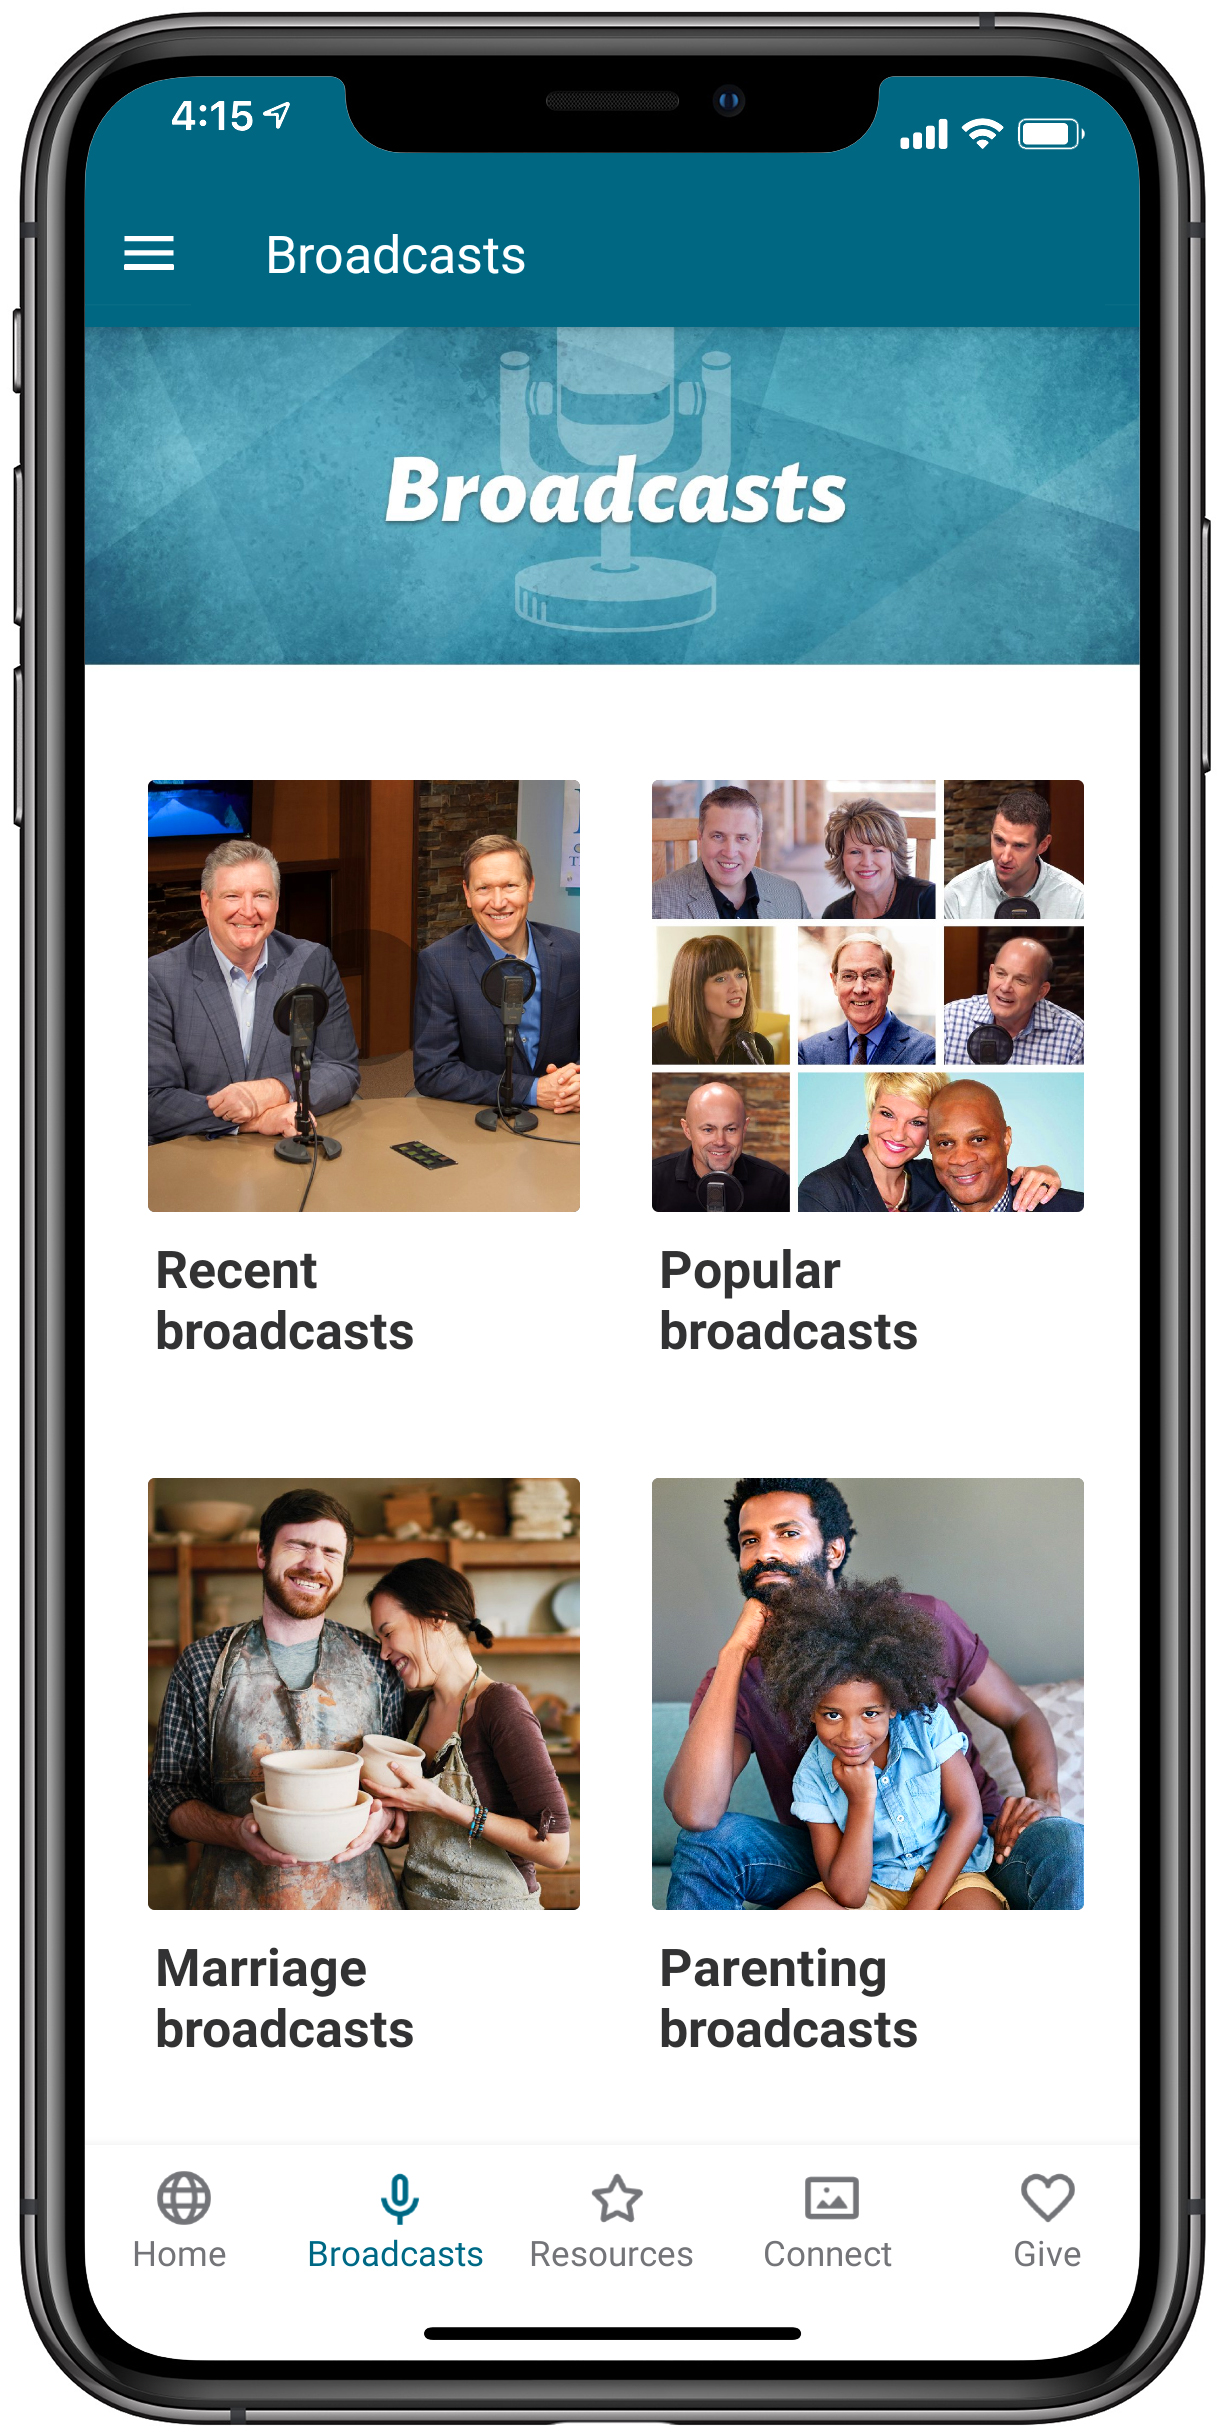 sample-screen-broadcasts